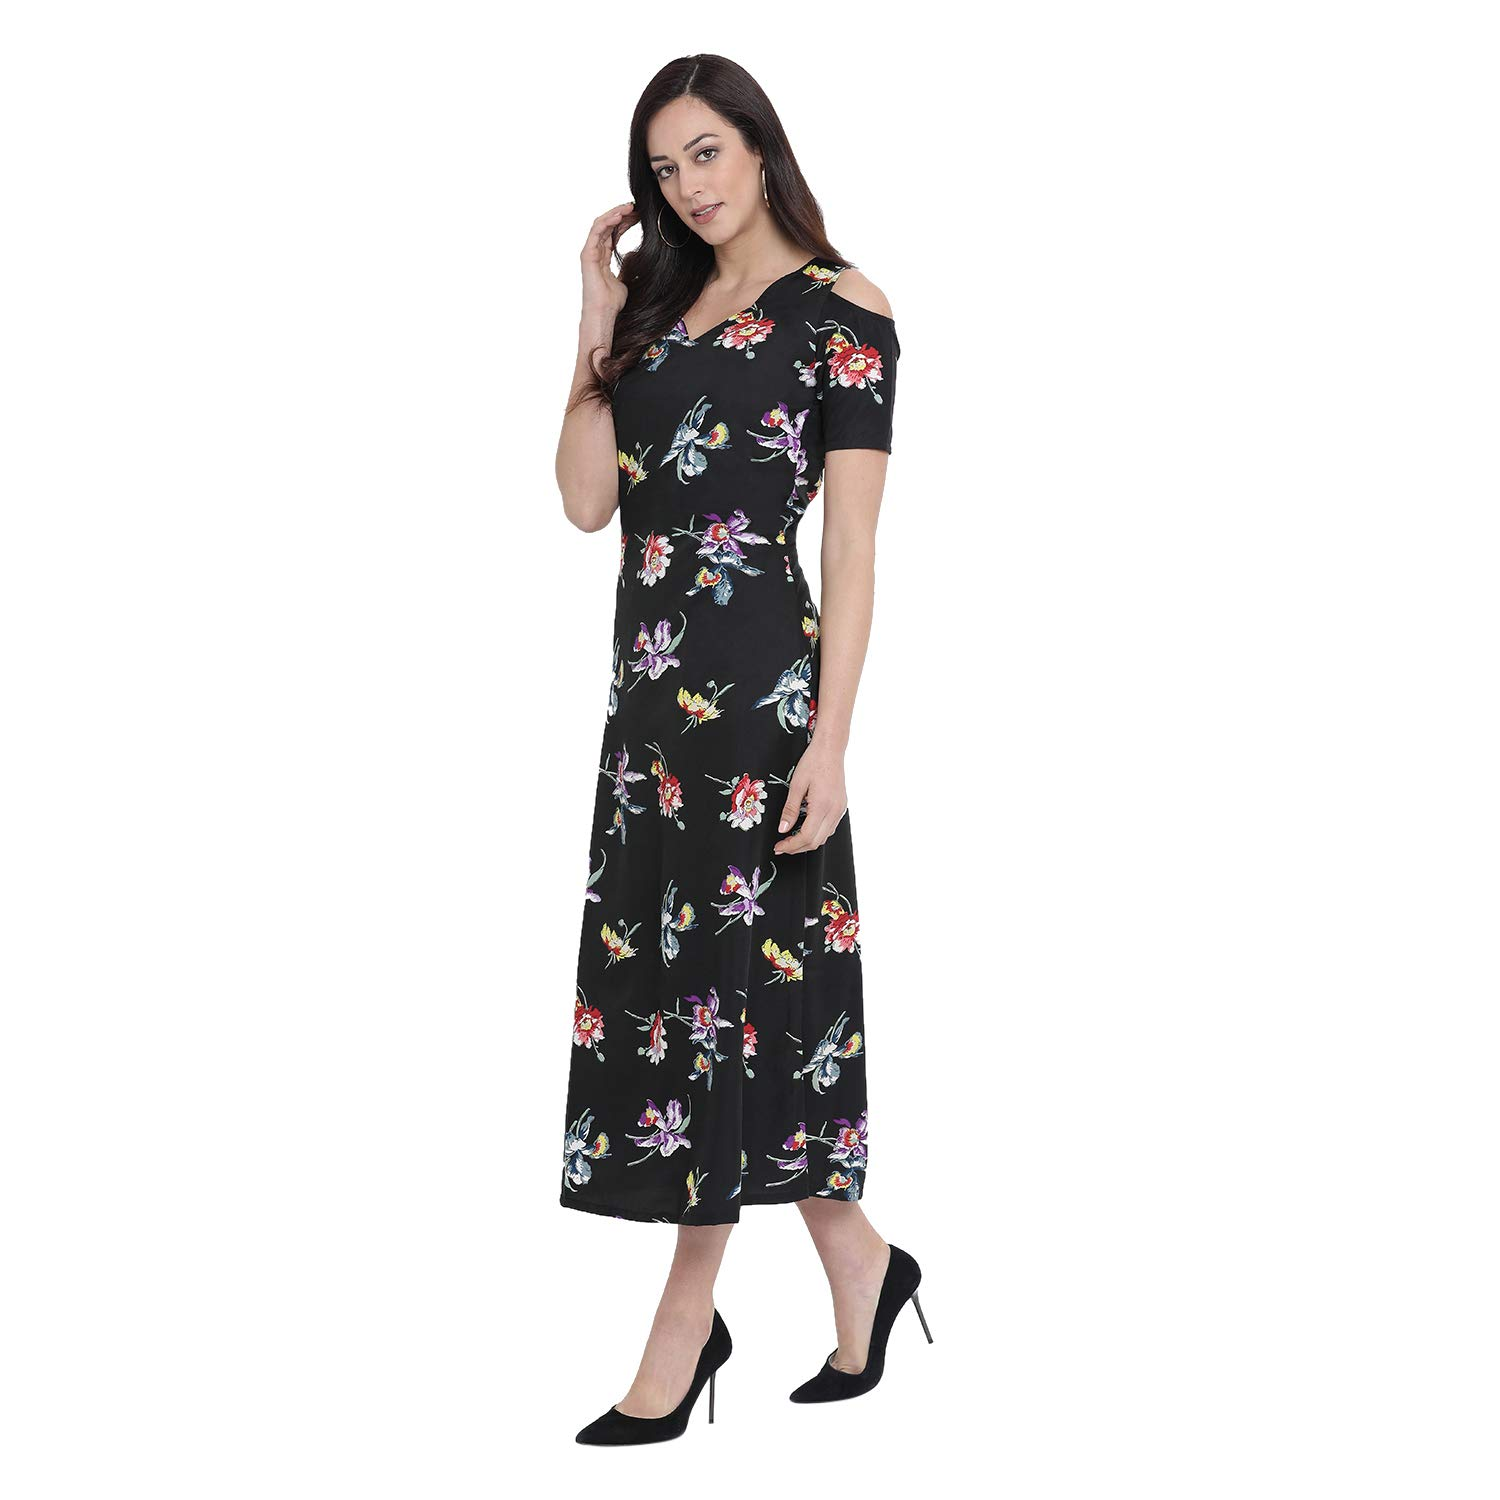 55e9f85696 Fabnest Womens Crepe Black Floral Print Cold Shoulder Maxi Dress:  Amazon.in: Clothing & Accessories